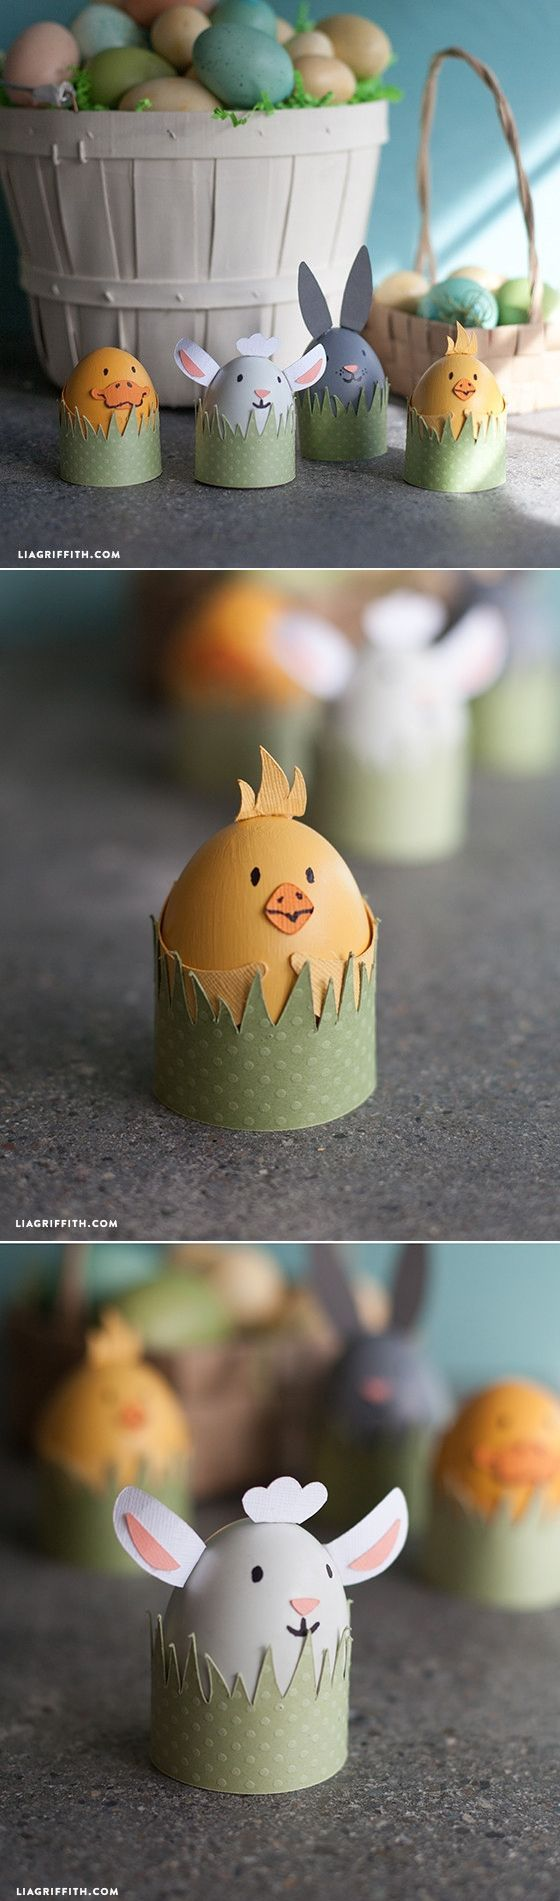 #EasterCraft #KidsCraft #EasterDecorations at www.LiaGriffith.com - created via http://pinthemall.net: